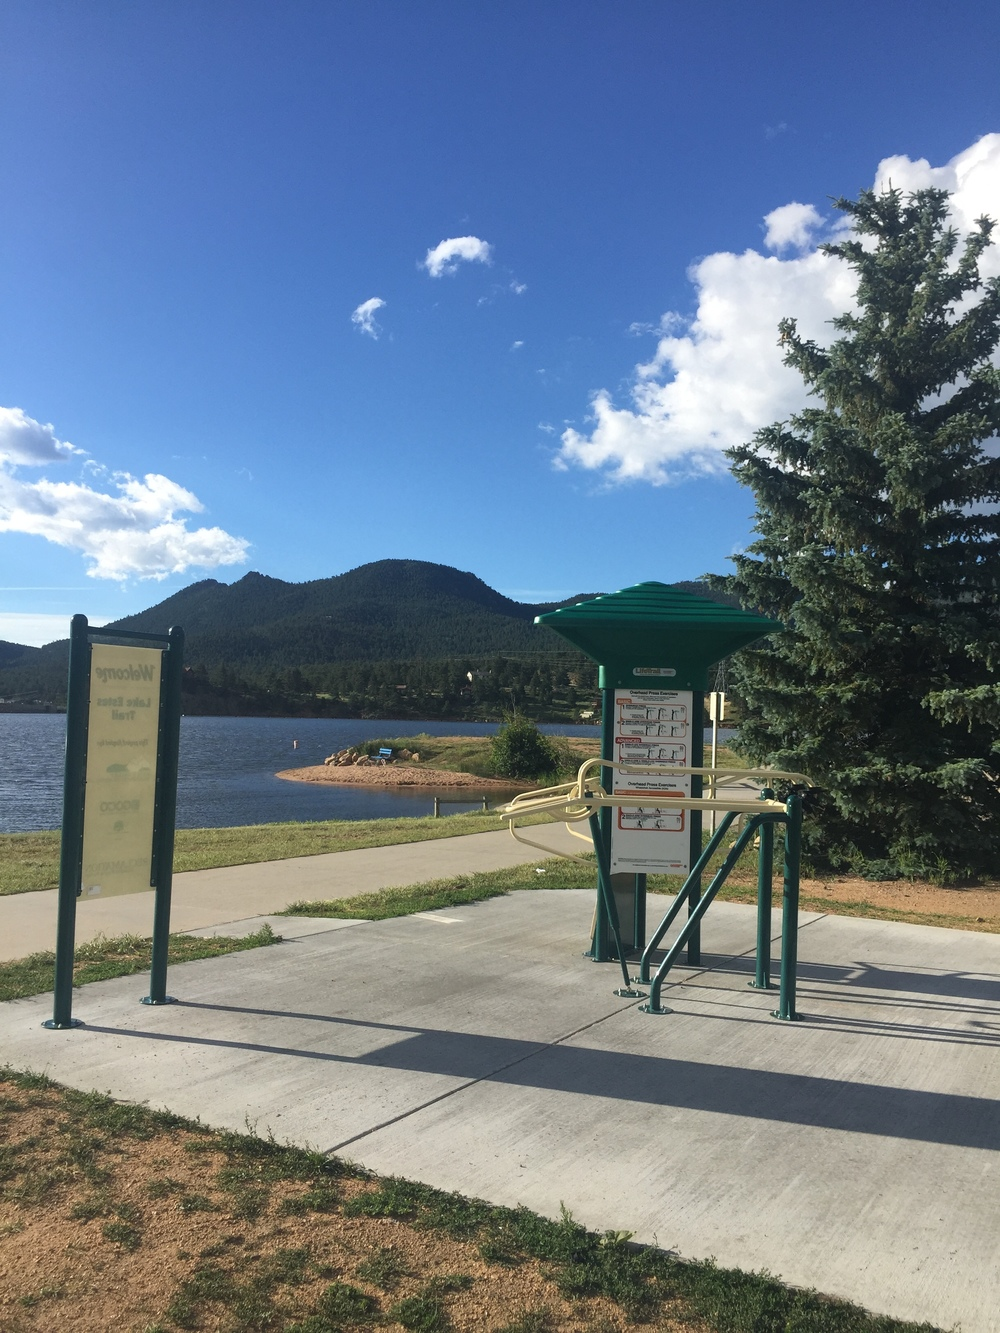 Do a few exercises as you walk around Lake Estes